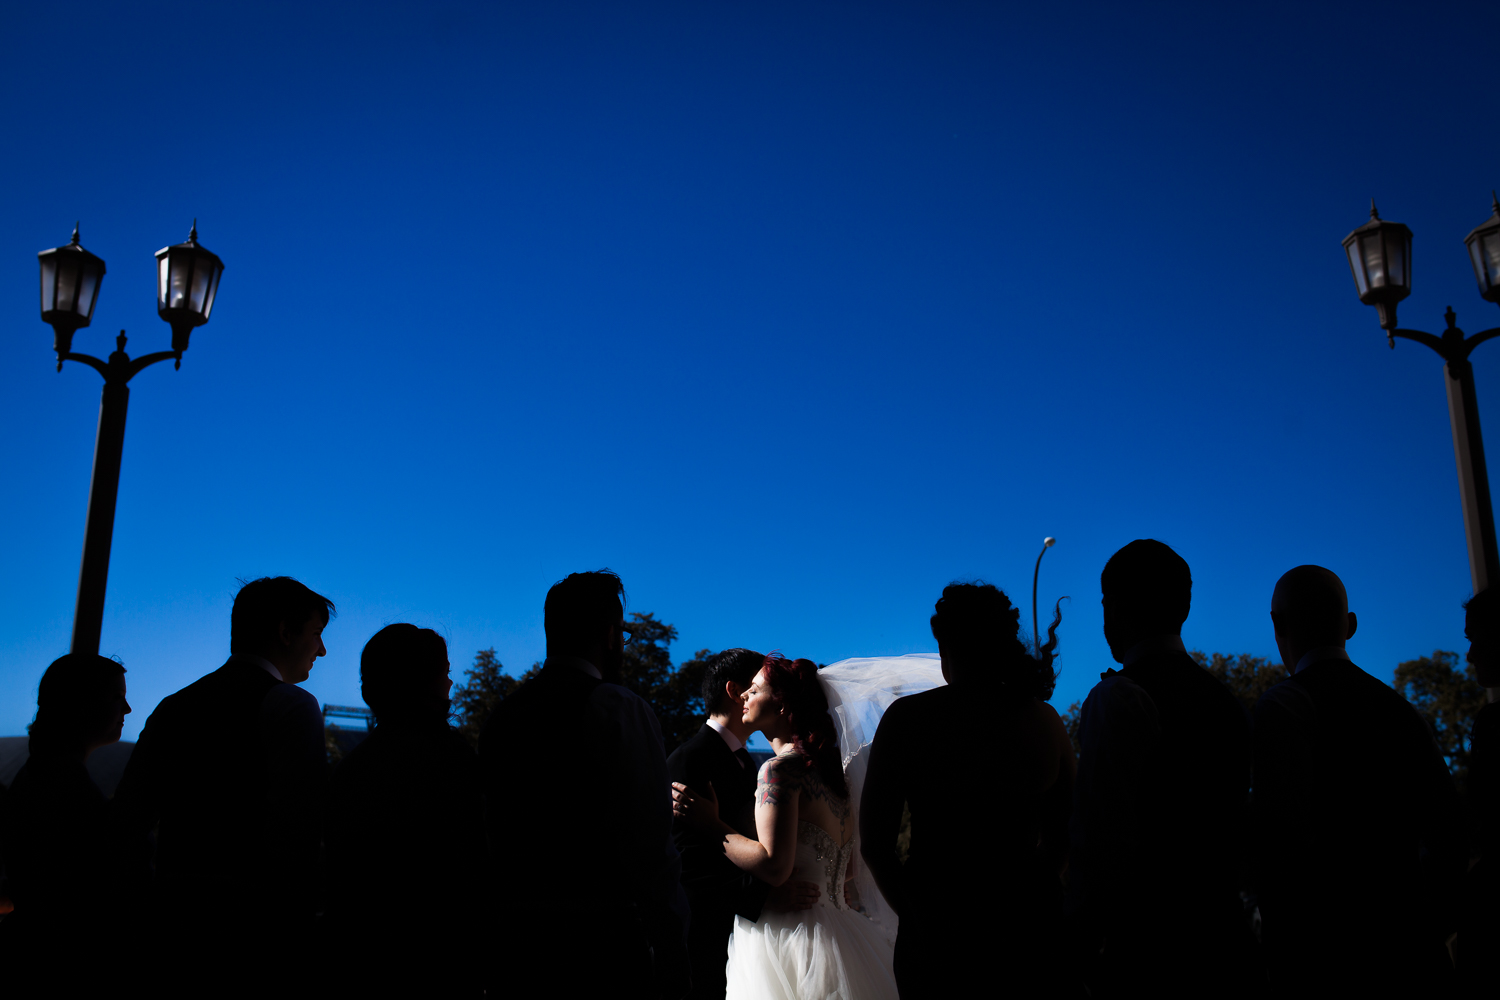 Jenn-and-Jason-Wedding-Photos-Blog-43.jpg